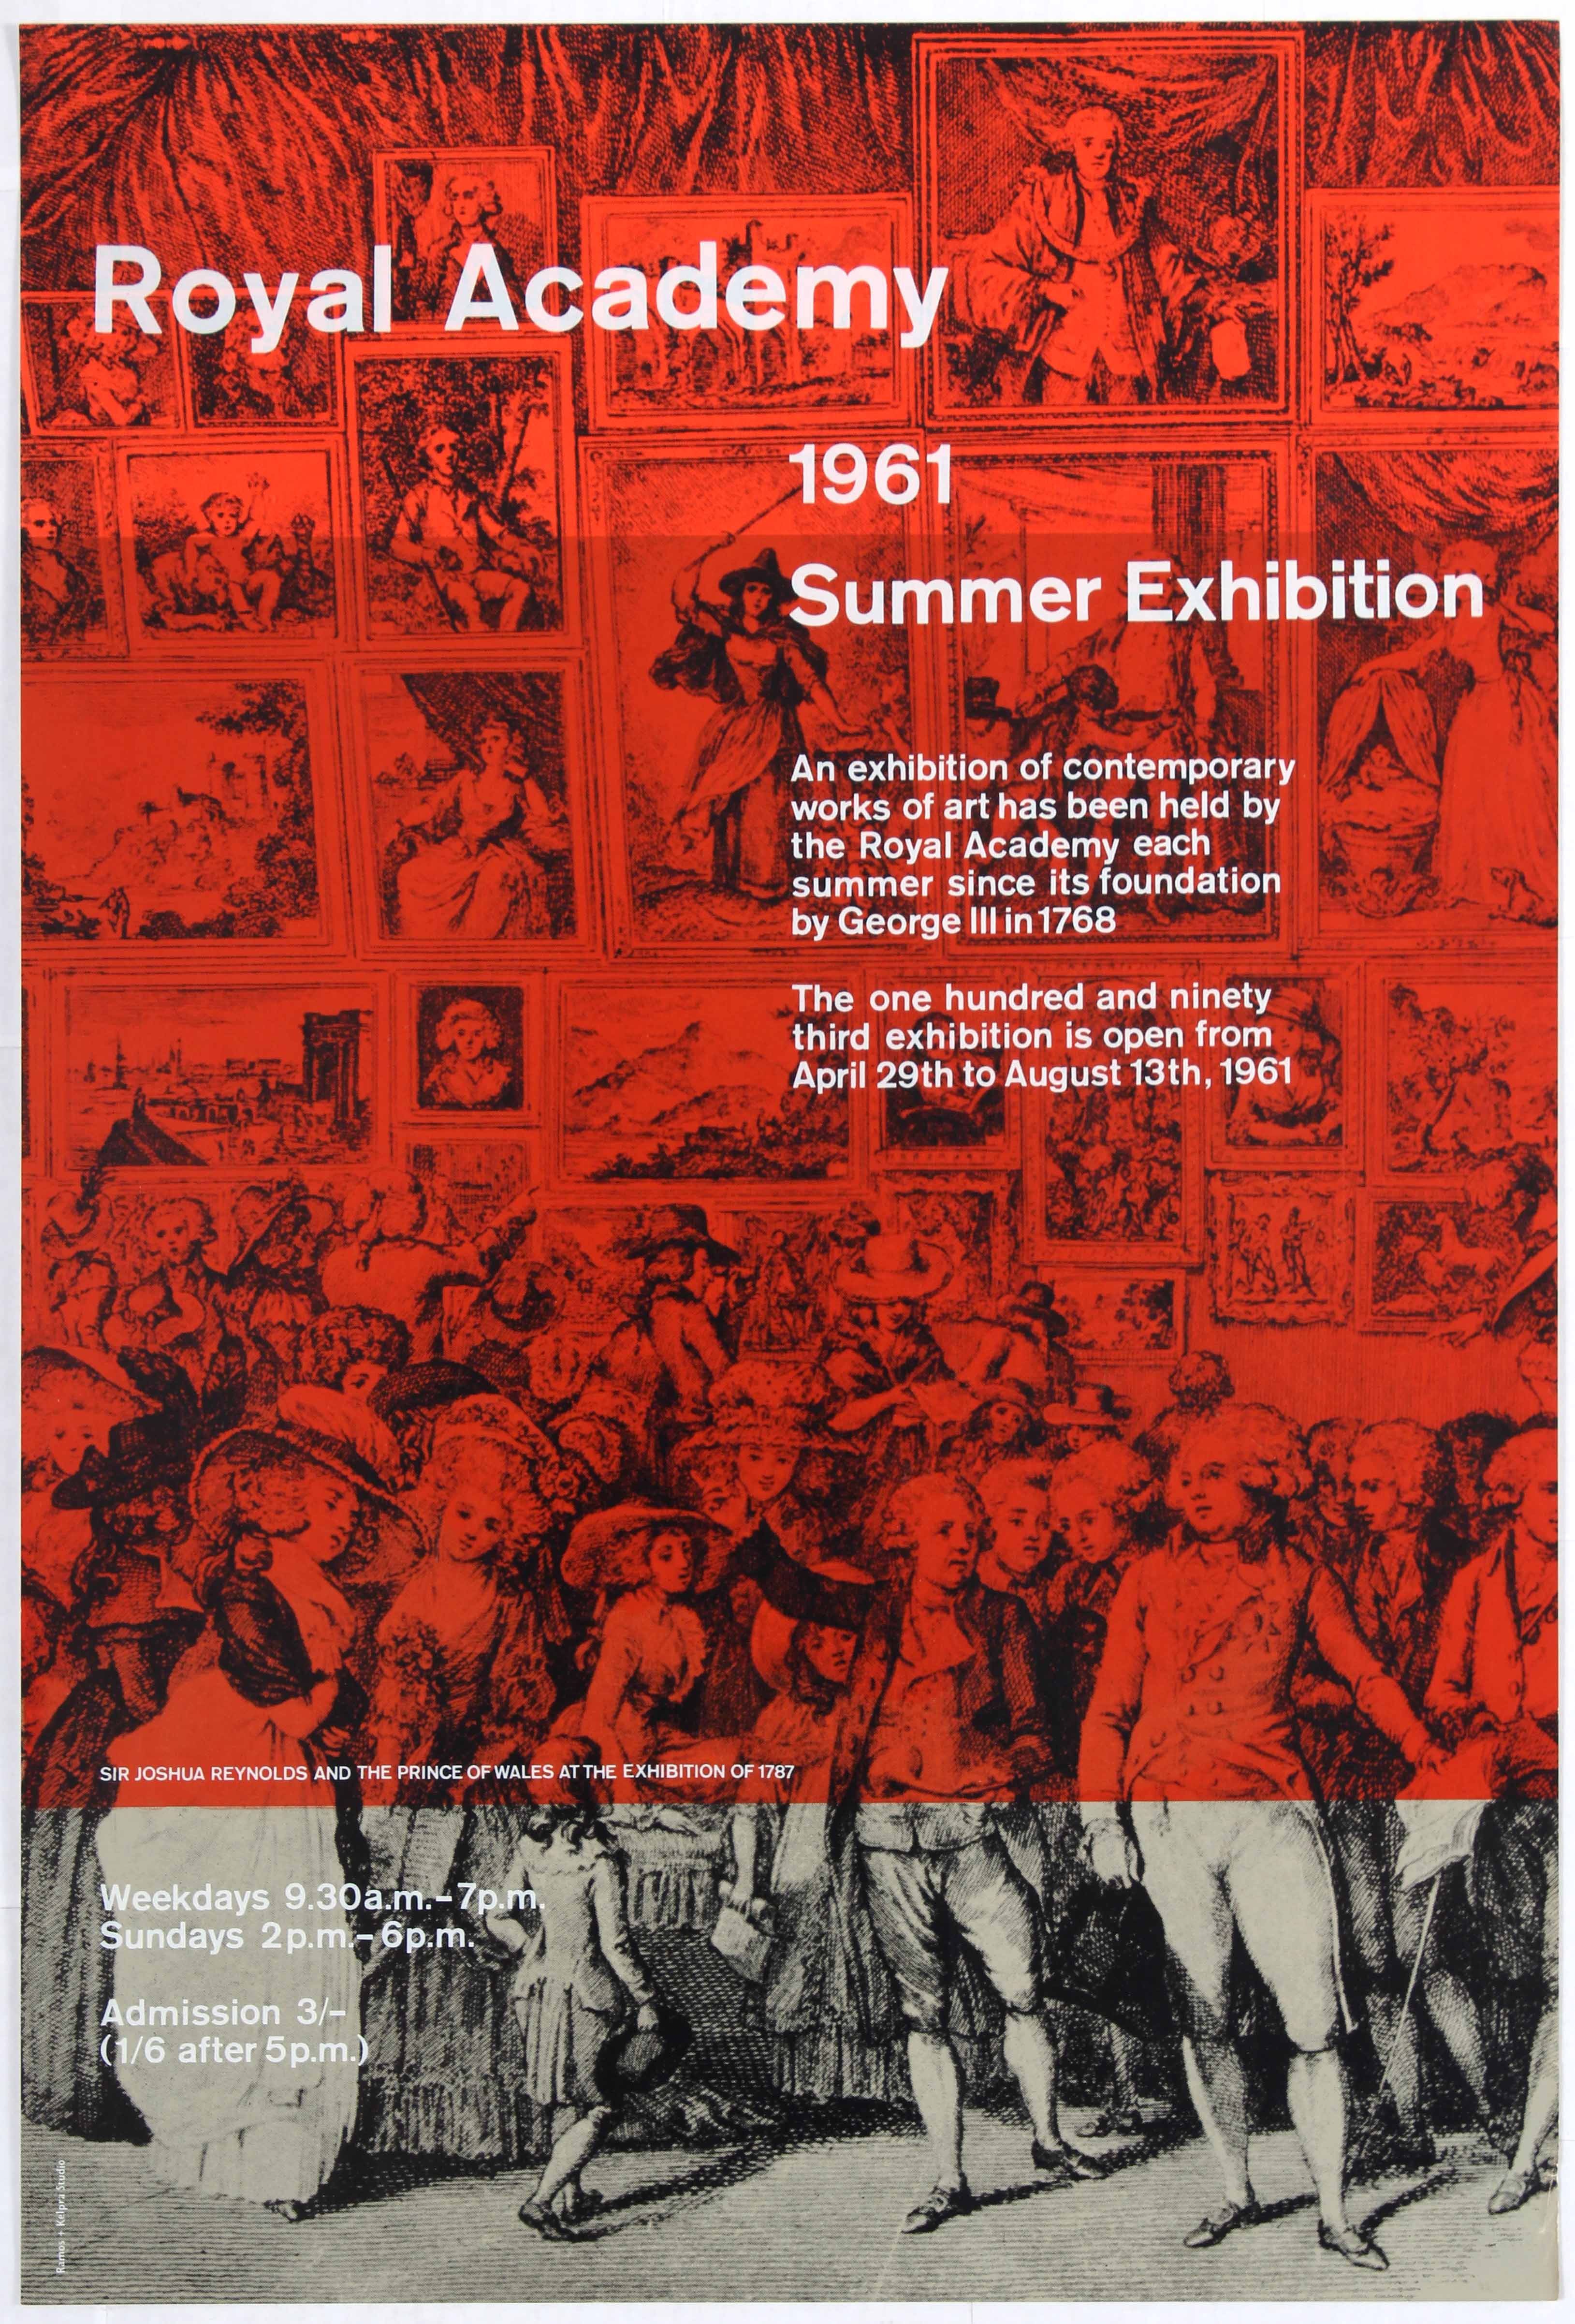 Lot 1620 - Advertising Poster Royal Academy Summer Exhibition 1961.